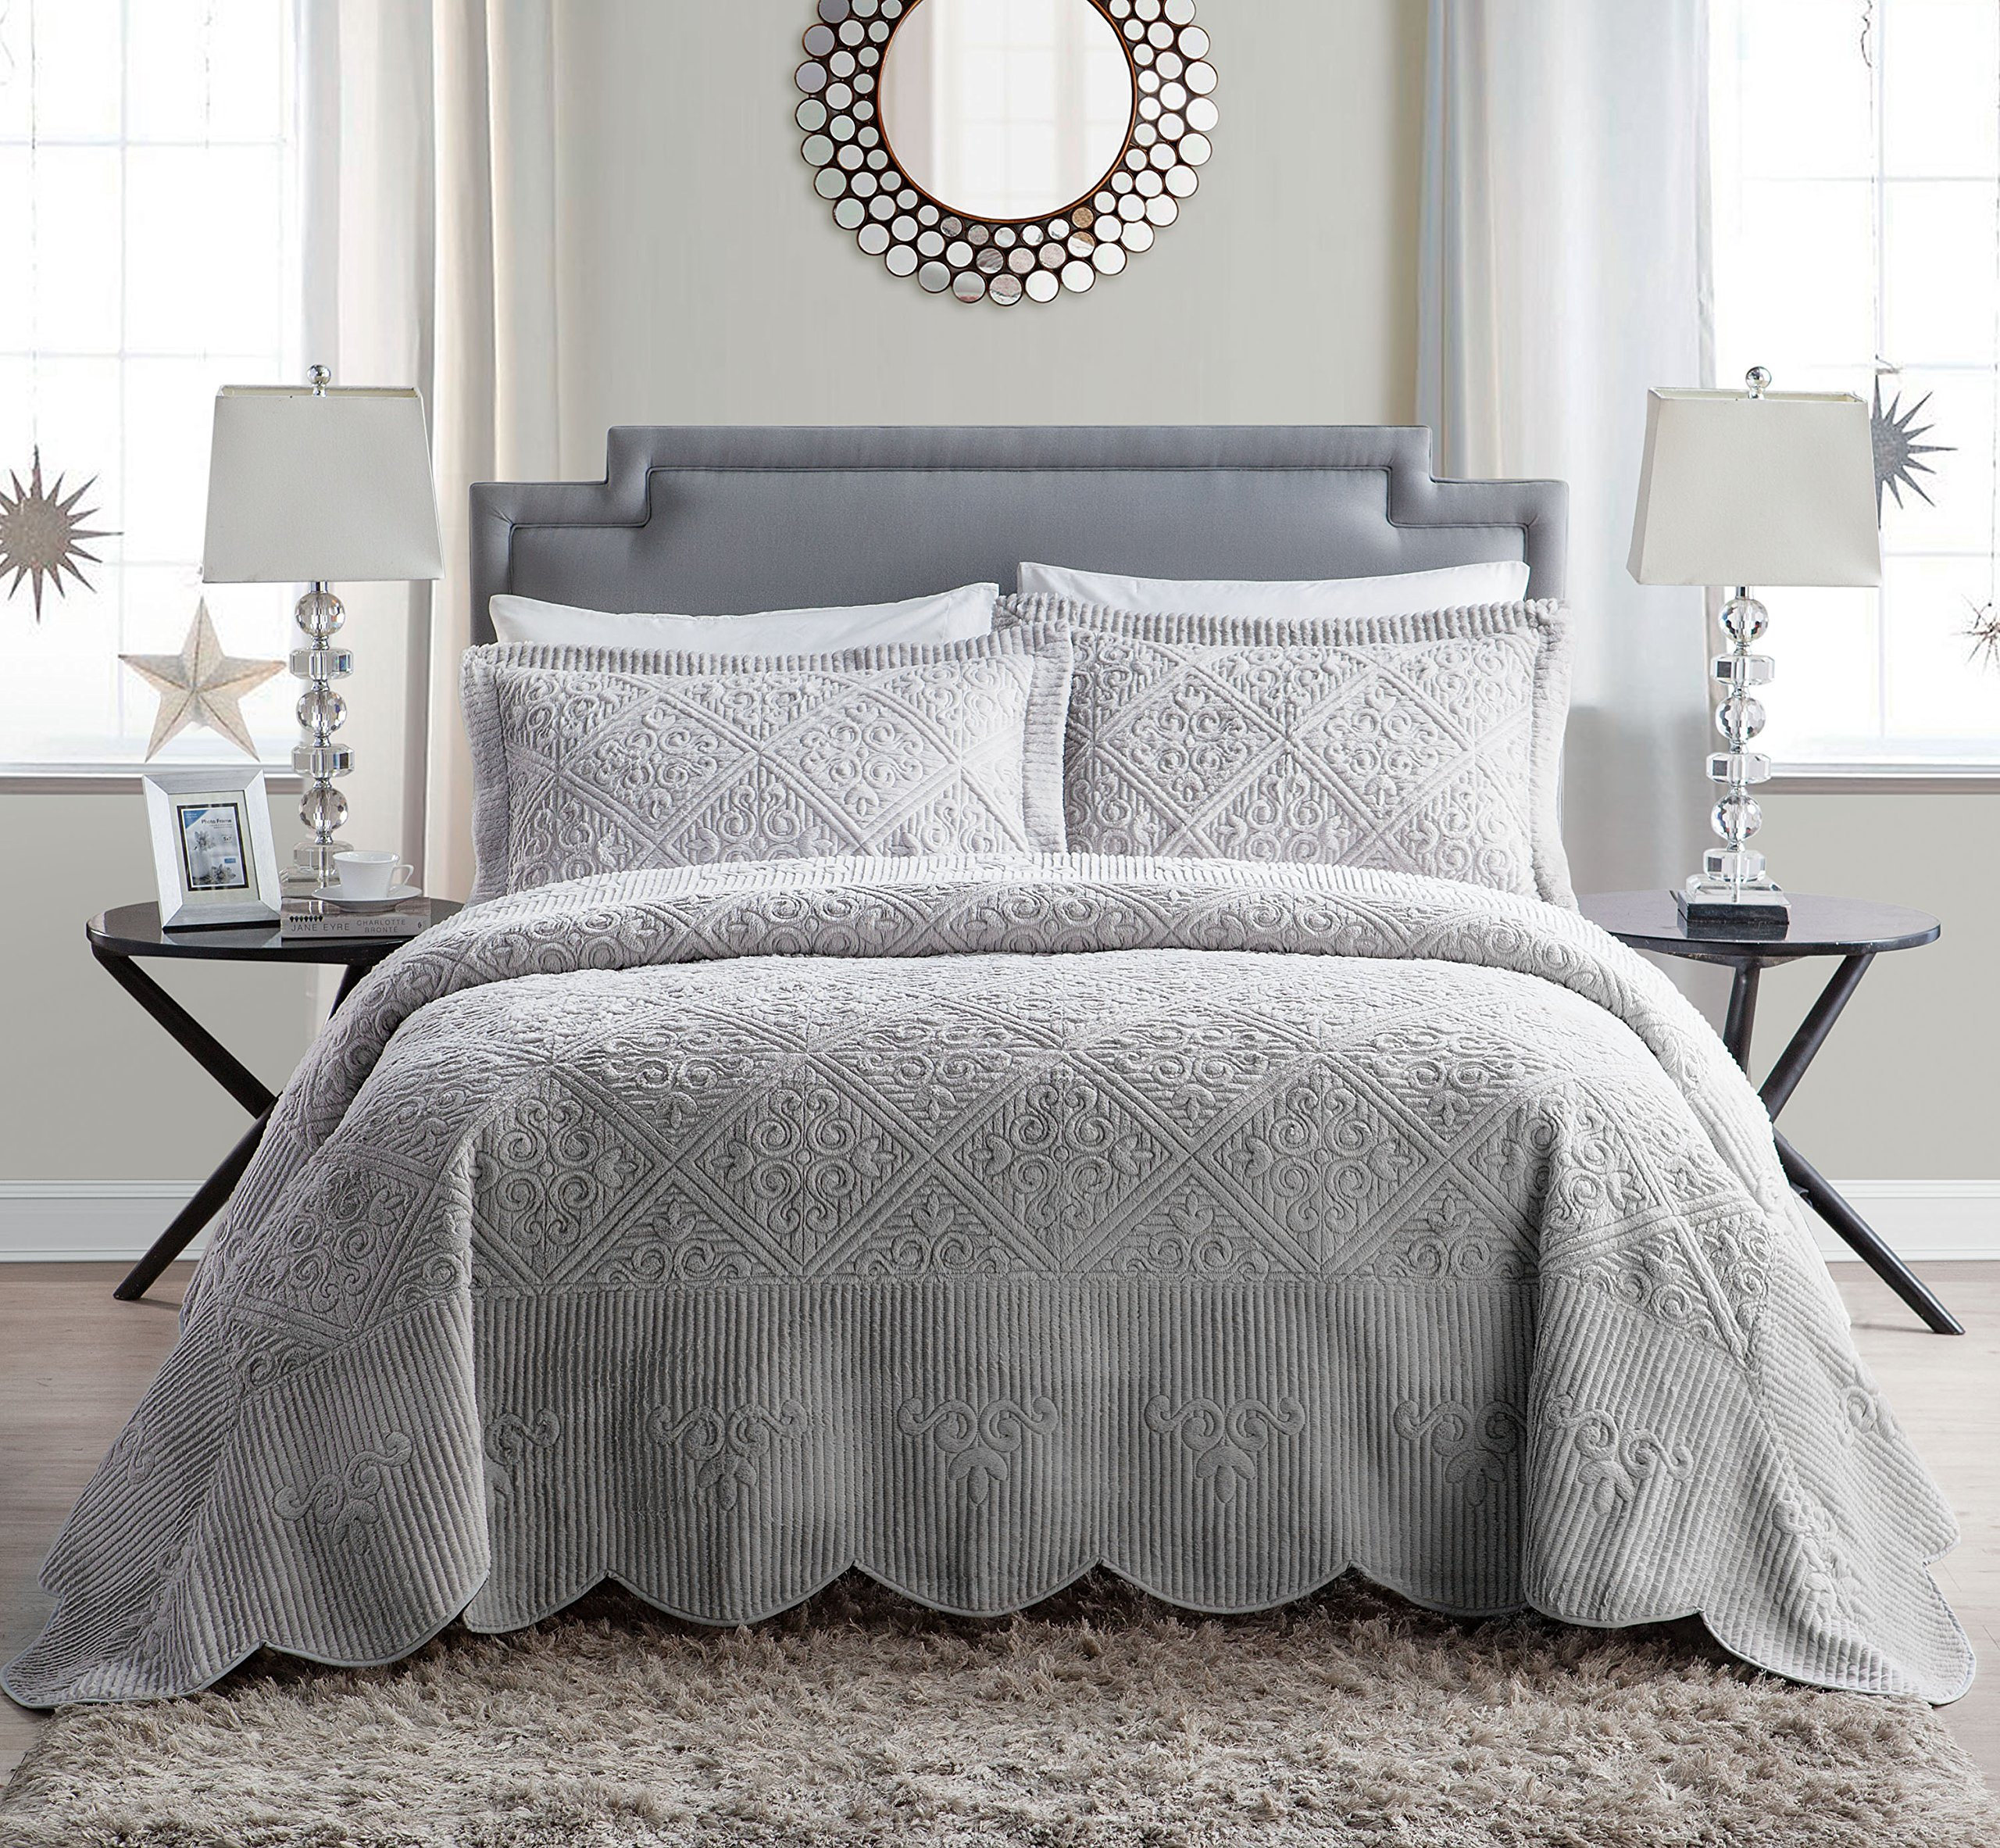 VCNY Home WS1-3BP-KING-IN-GV Westland Plush Quilted 3-Piece Bedspread Set, King, Grey by VCNY Home